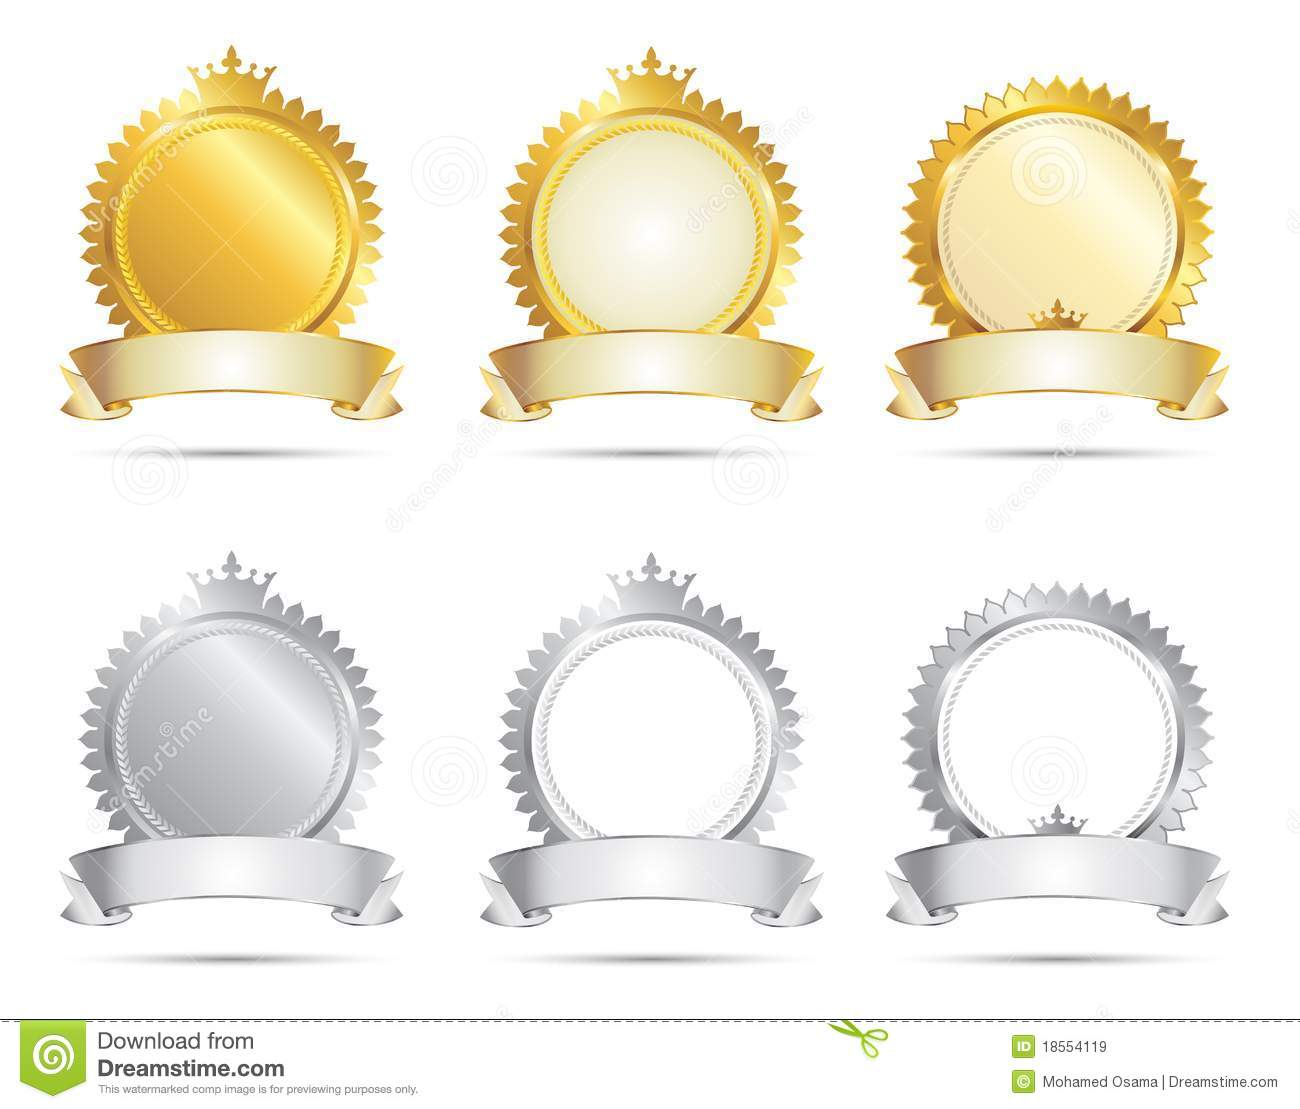 Approval Seal Gold & Silver Set Stock Vector - Image: 18554119